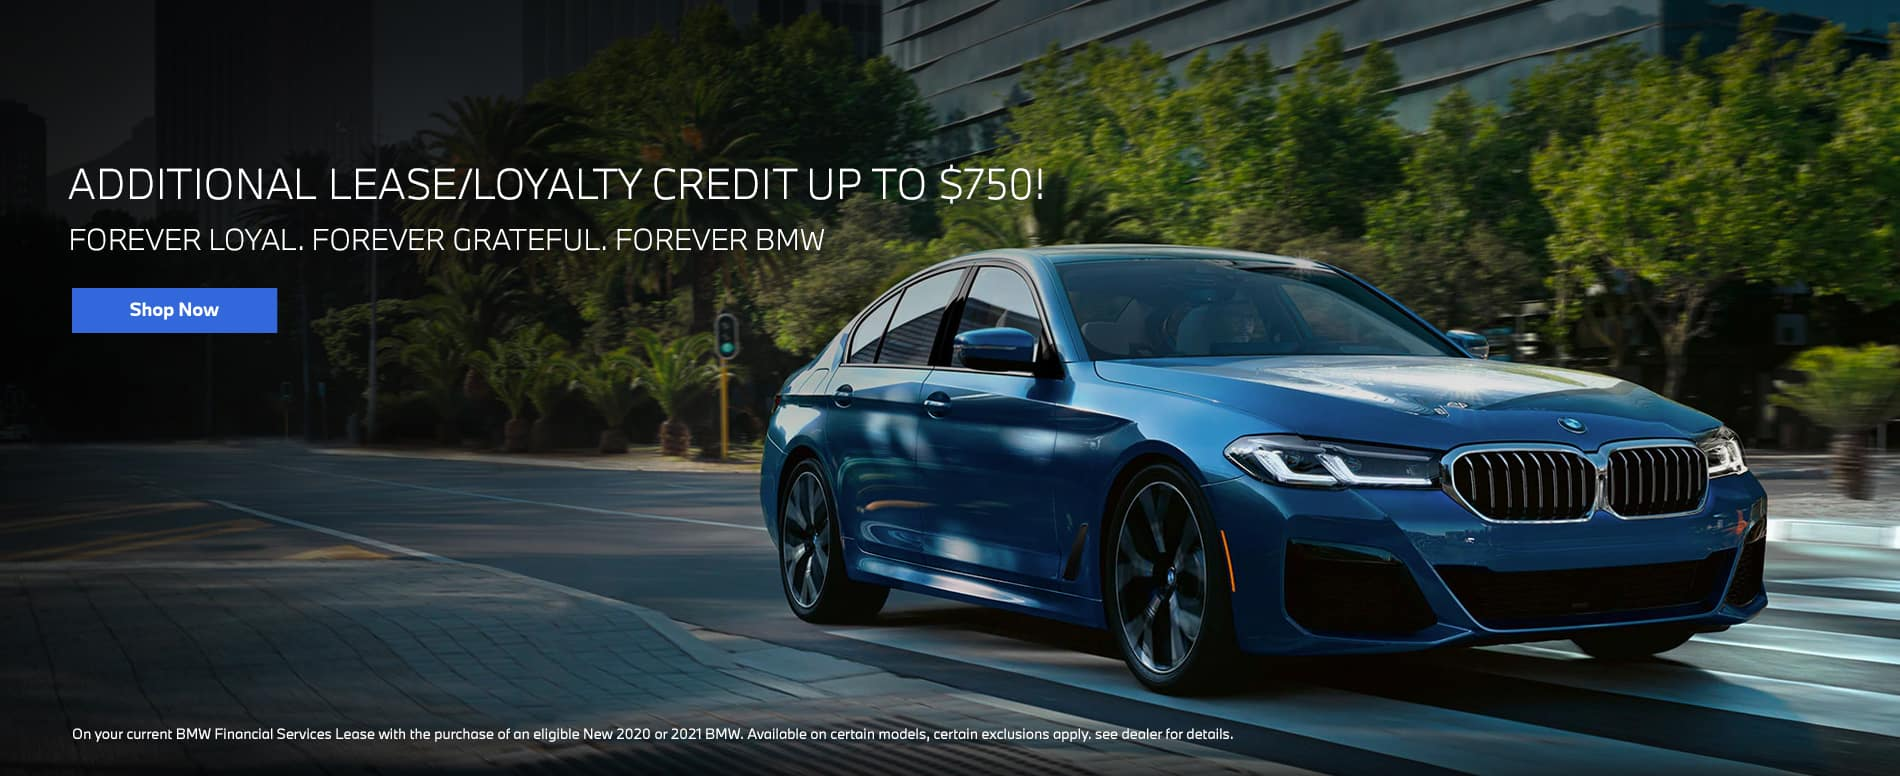 Lease Loyalty Credit